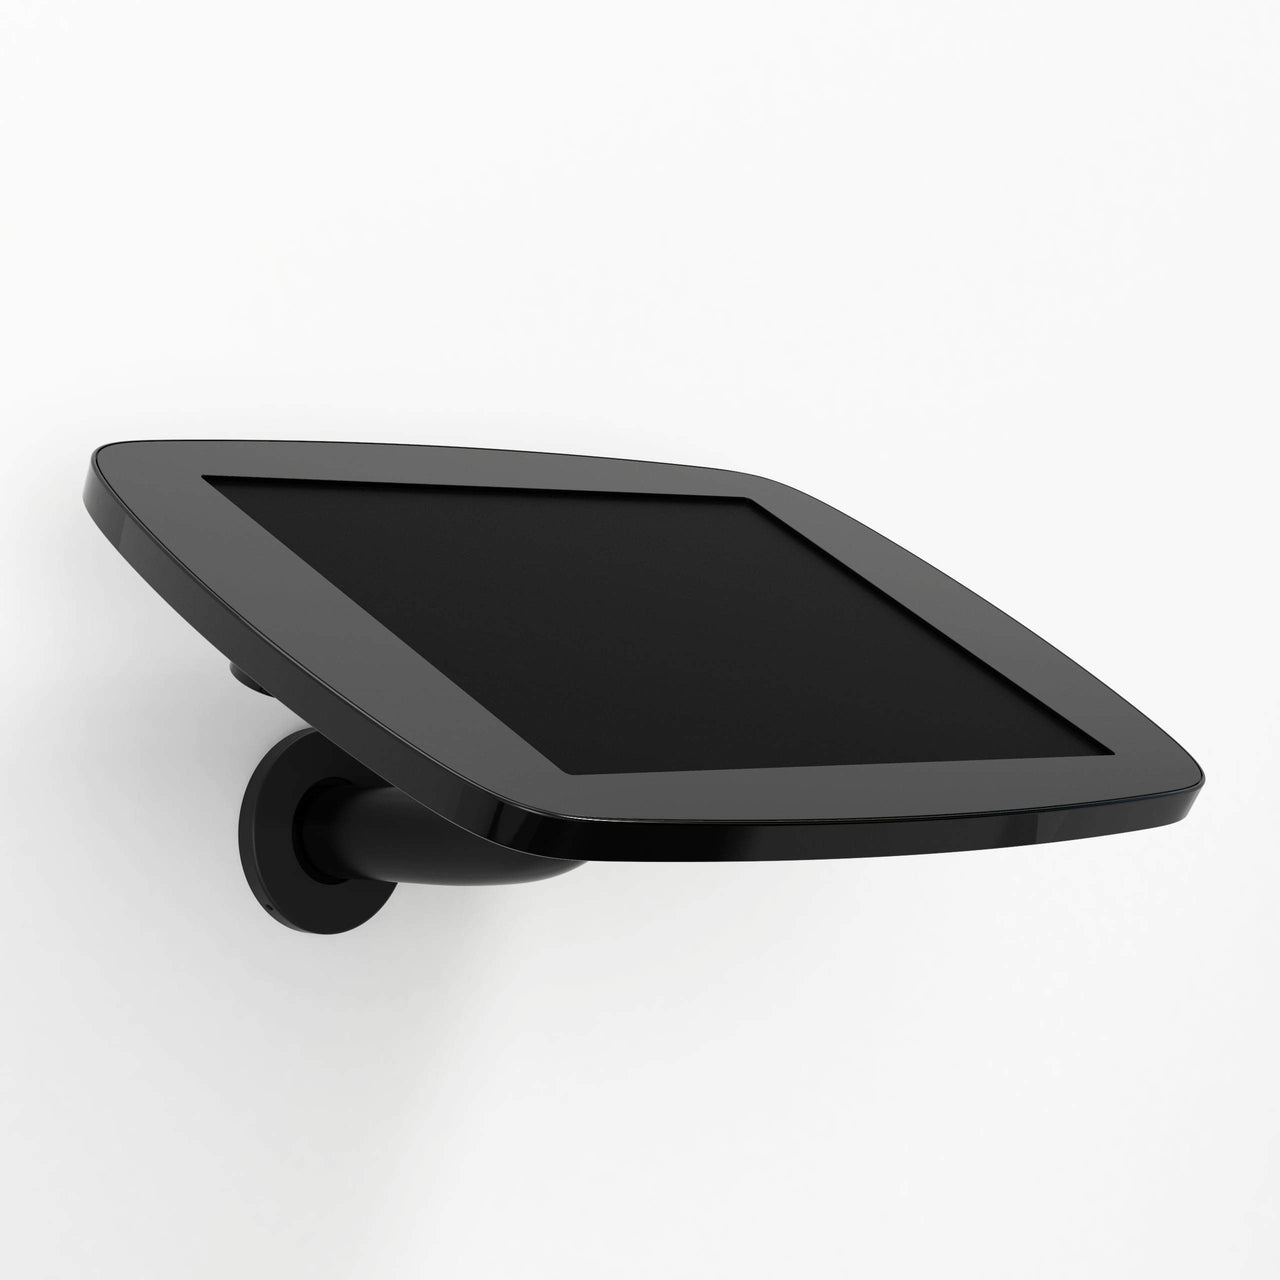 Bouncepad Branch - A secure tablet & iPad wall mount in Black.